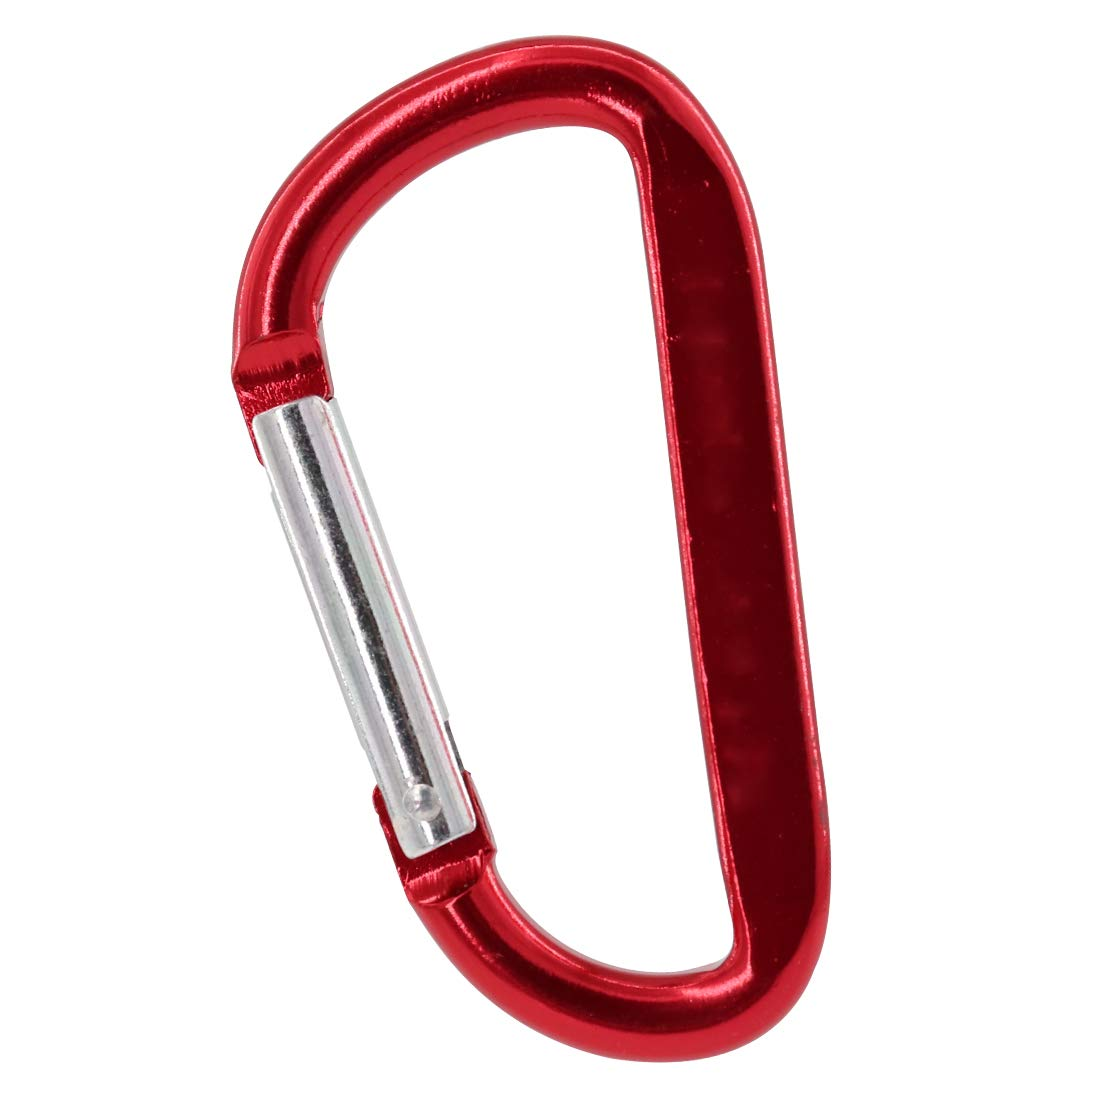 Gisdanchz 48 x 24mm Mini Small Aluminum Alloy D-Shaped Carabiner Clip, Hiking Camping Fishing Easy Keychain Holder for Backpack